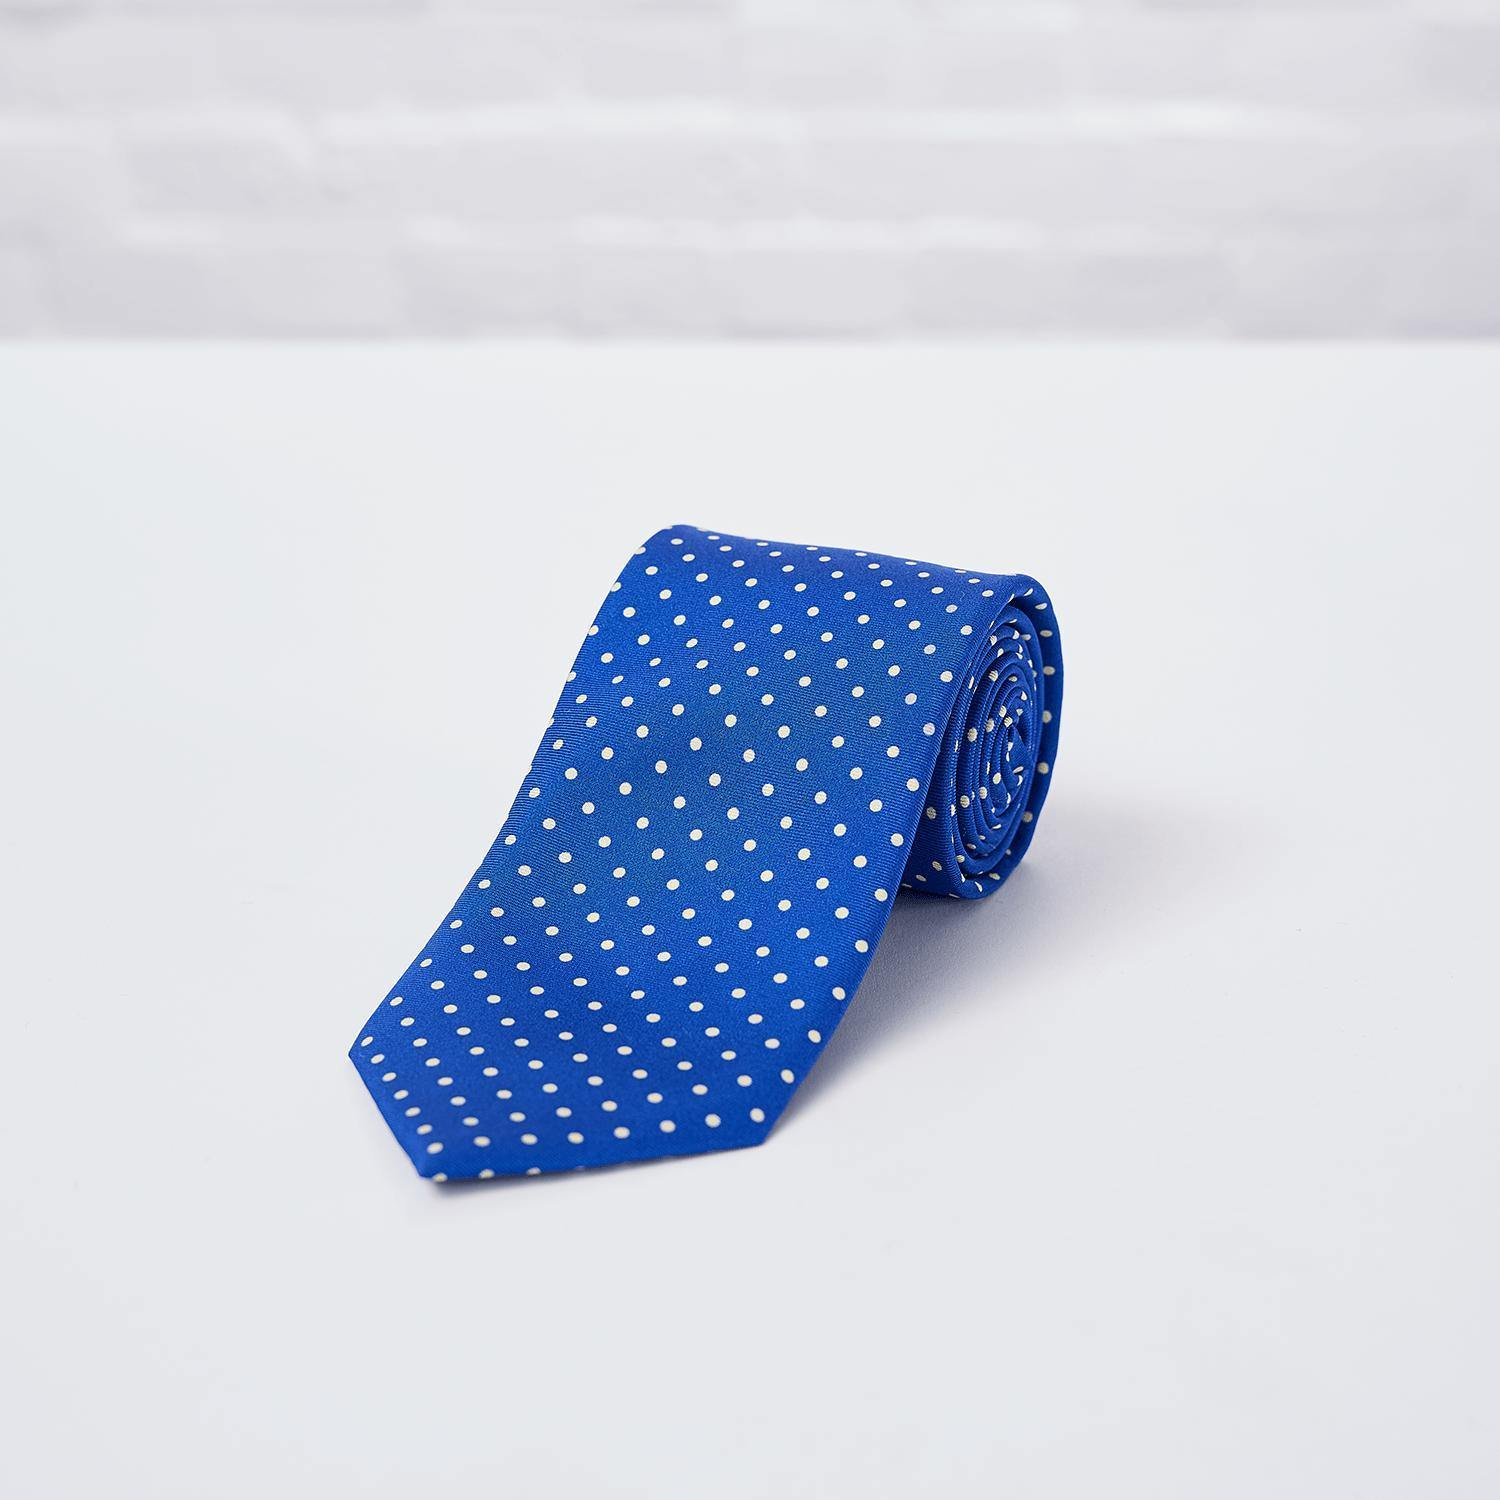 Blue Small Spot Printed Silk Tie Hand Finished - British Made